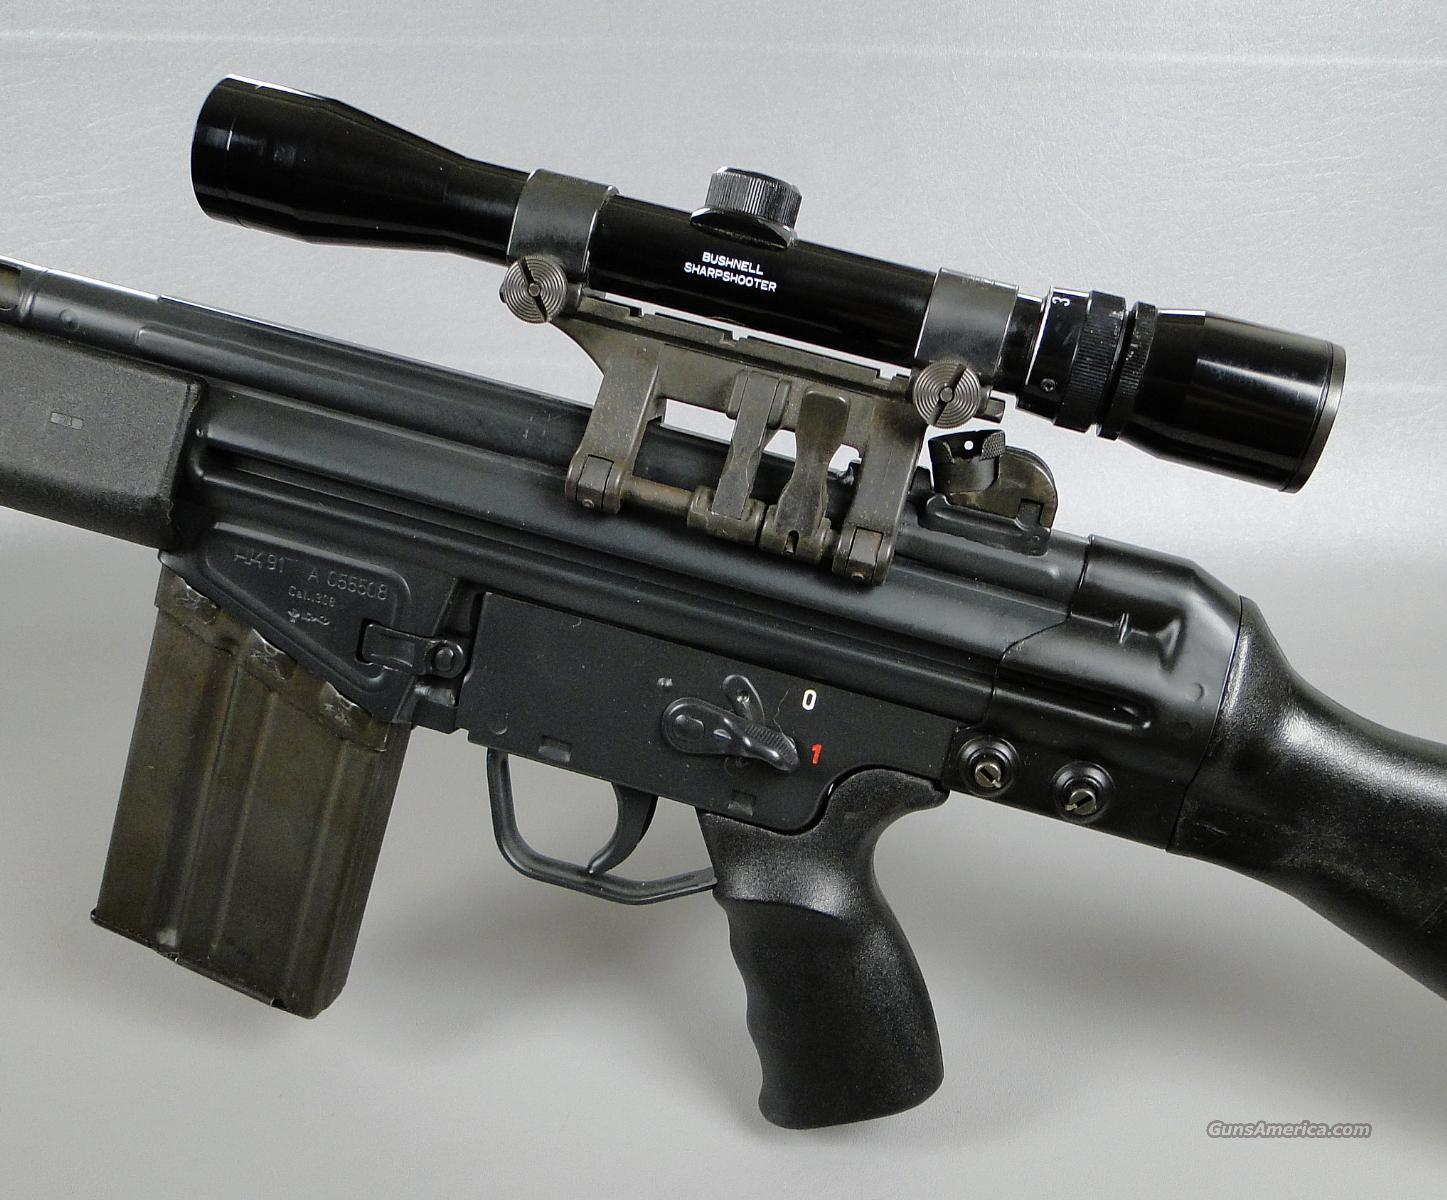 HK91 308 Nato Tactical Rifle with Quick Release... for sale